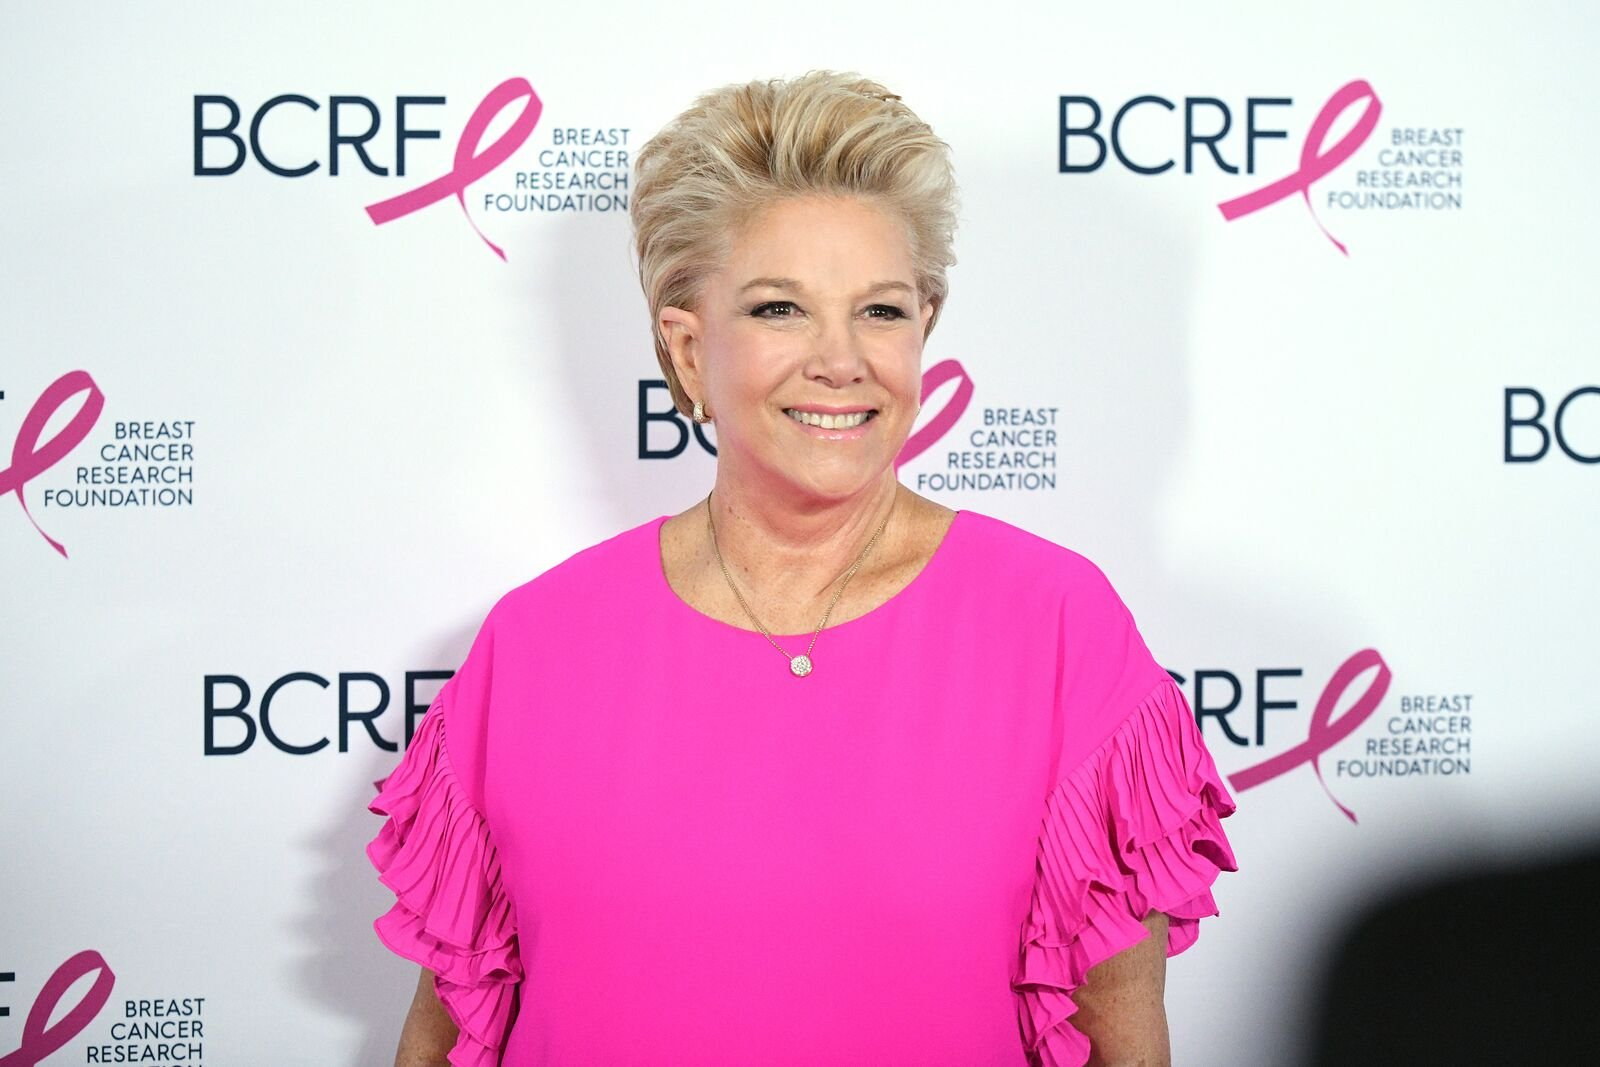 Joan Lunden attends the Breast Cancer Research Foundation (BCRF) New York symposium & awards luncheon on October 17, 2019. | Source: Getty Images